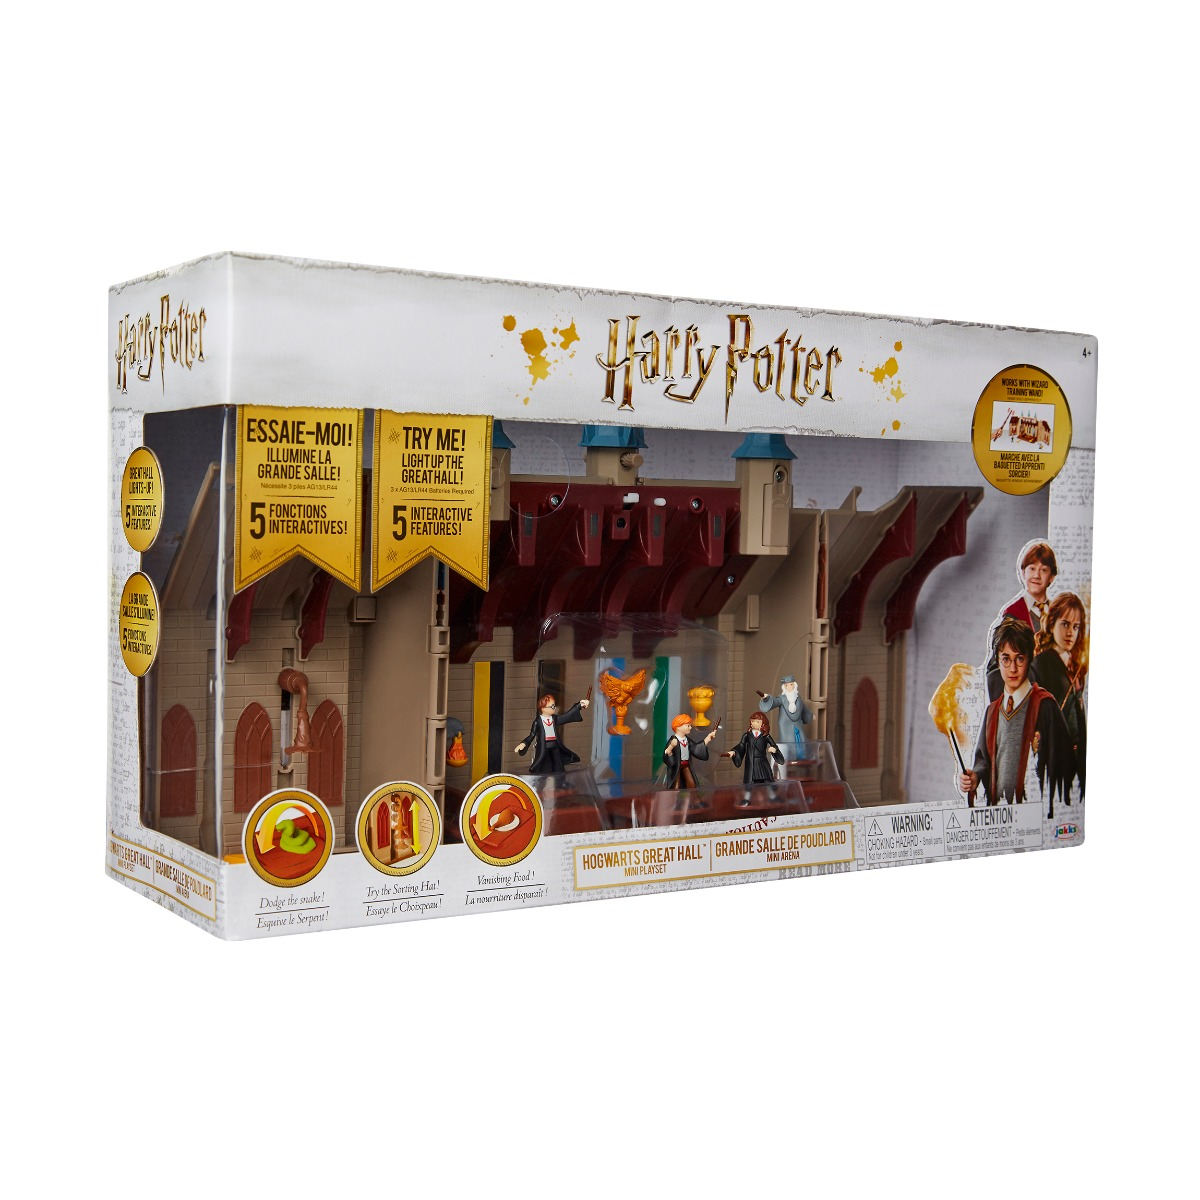 Set de joaca cu figurine Harry Potter, Deluxe Hogwarts Great Hall